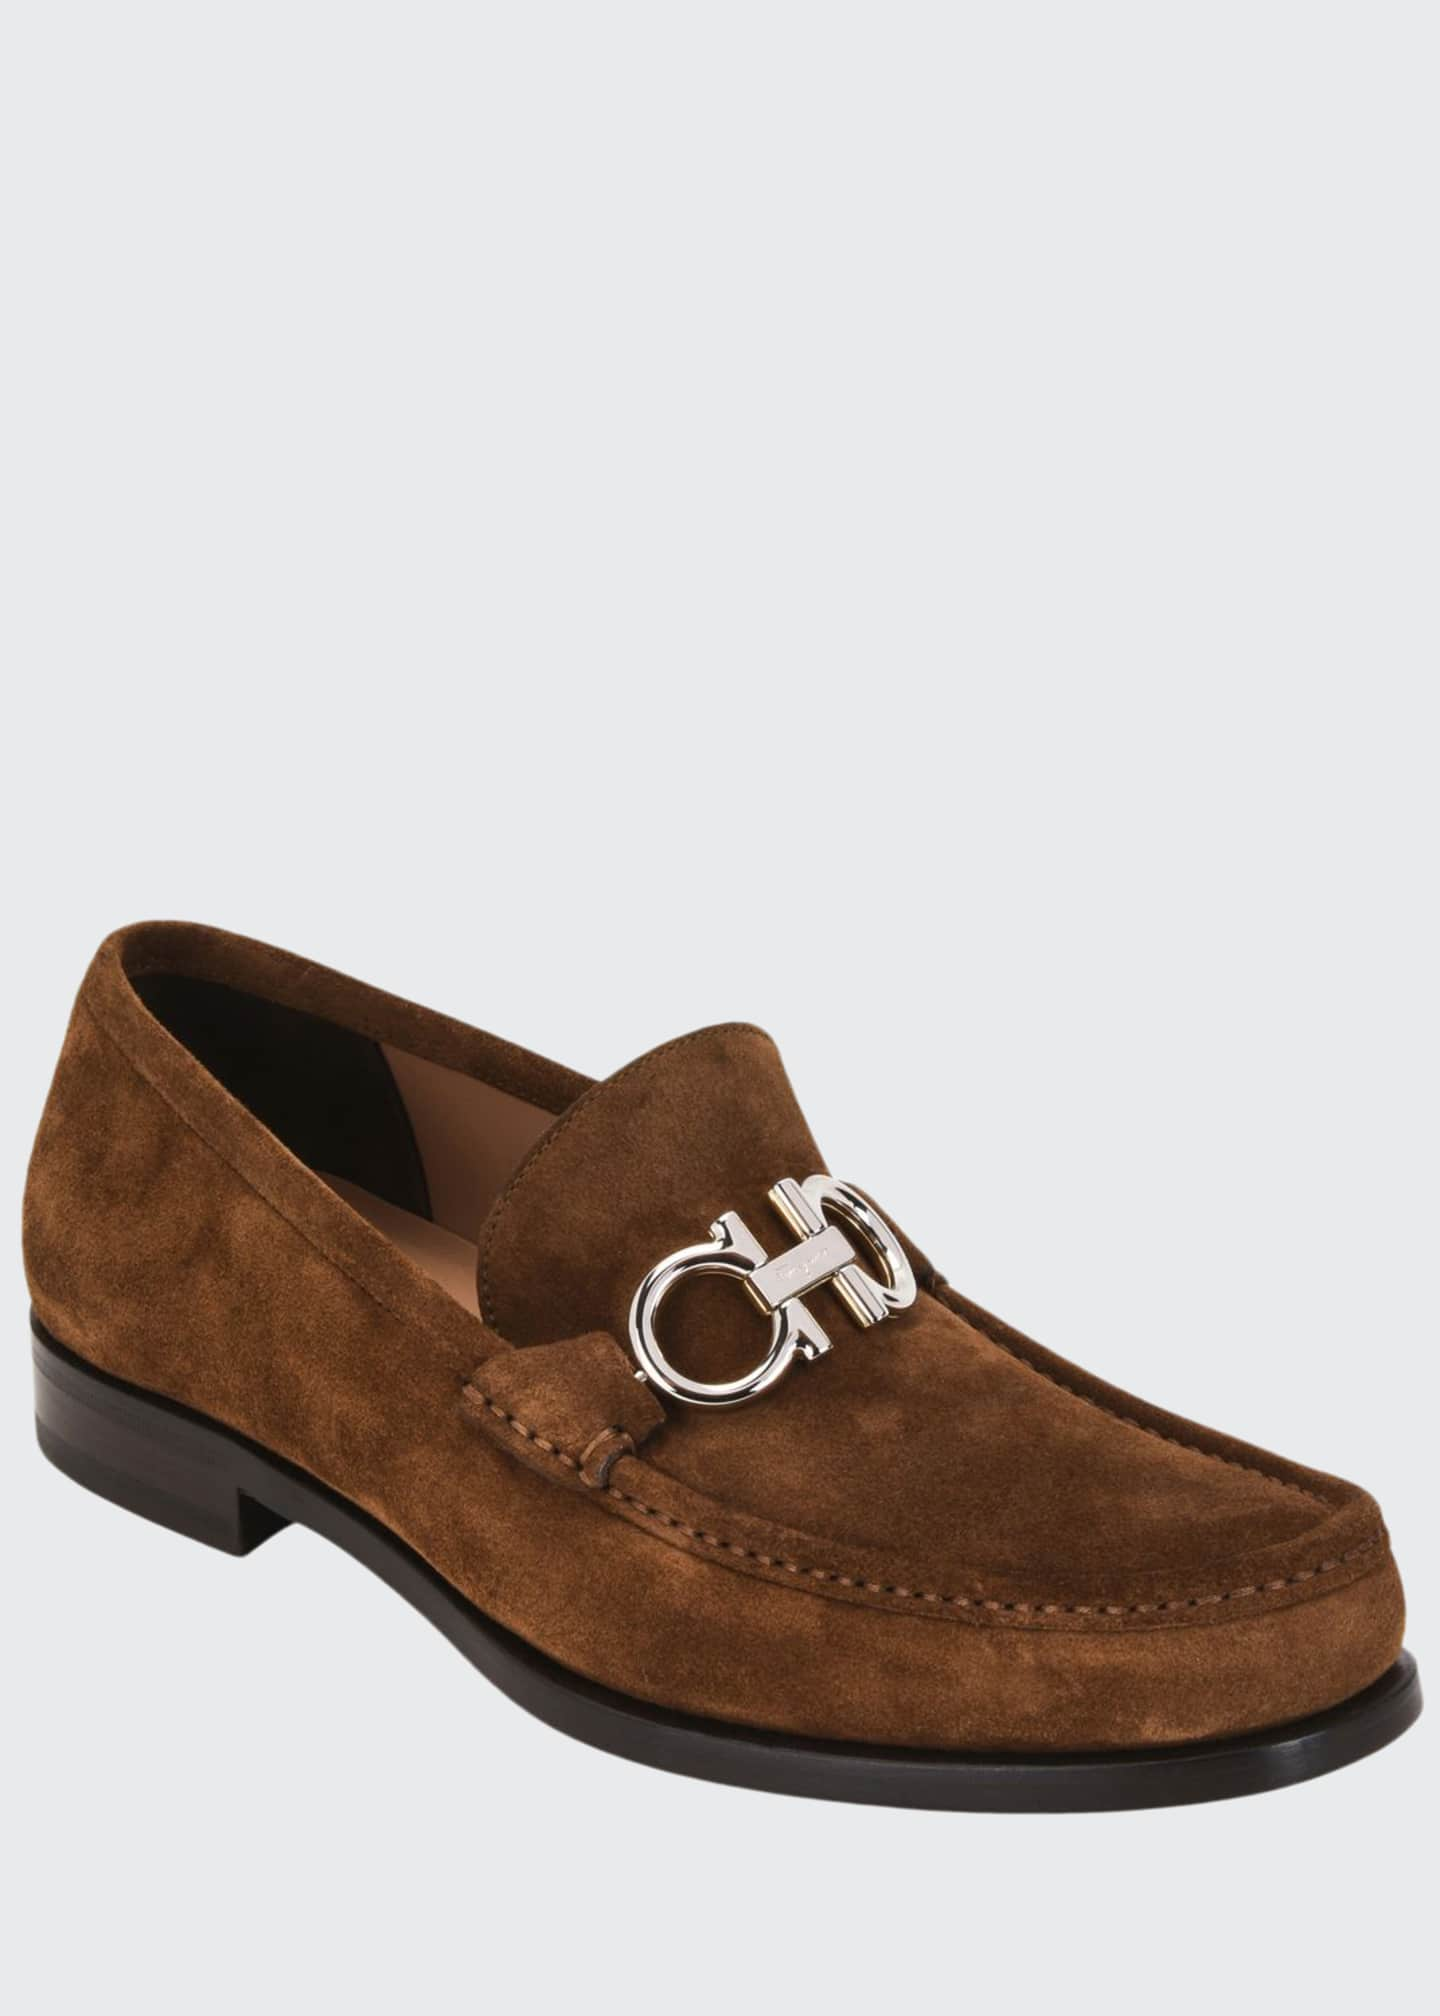 Image 1 of 4: Men's Rolo Suede Gancini-Bit Loafers